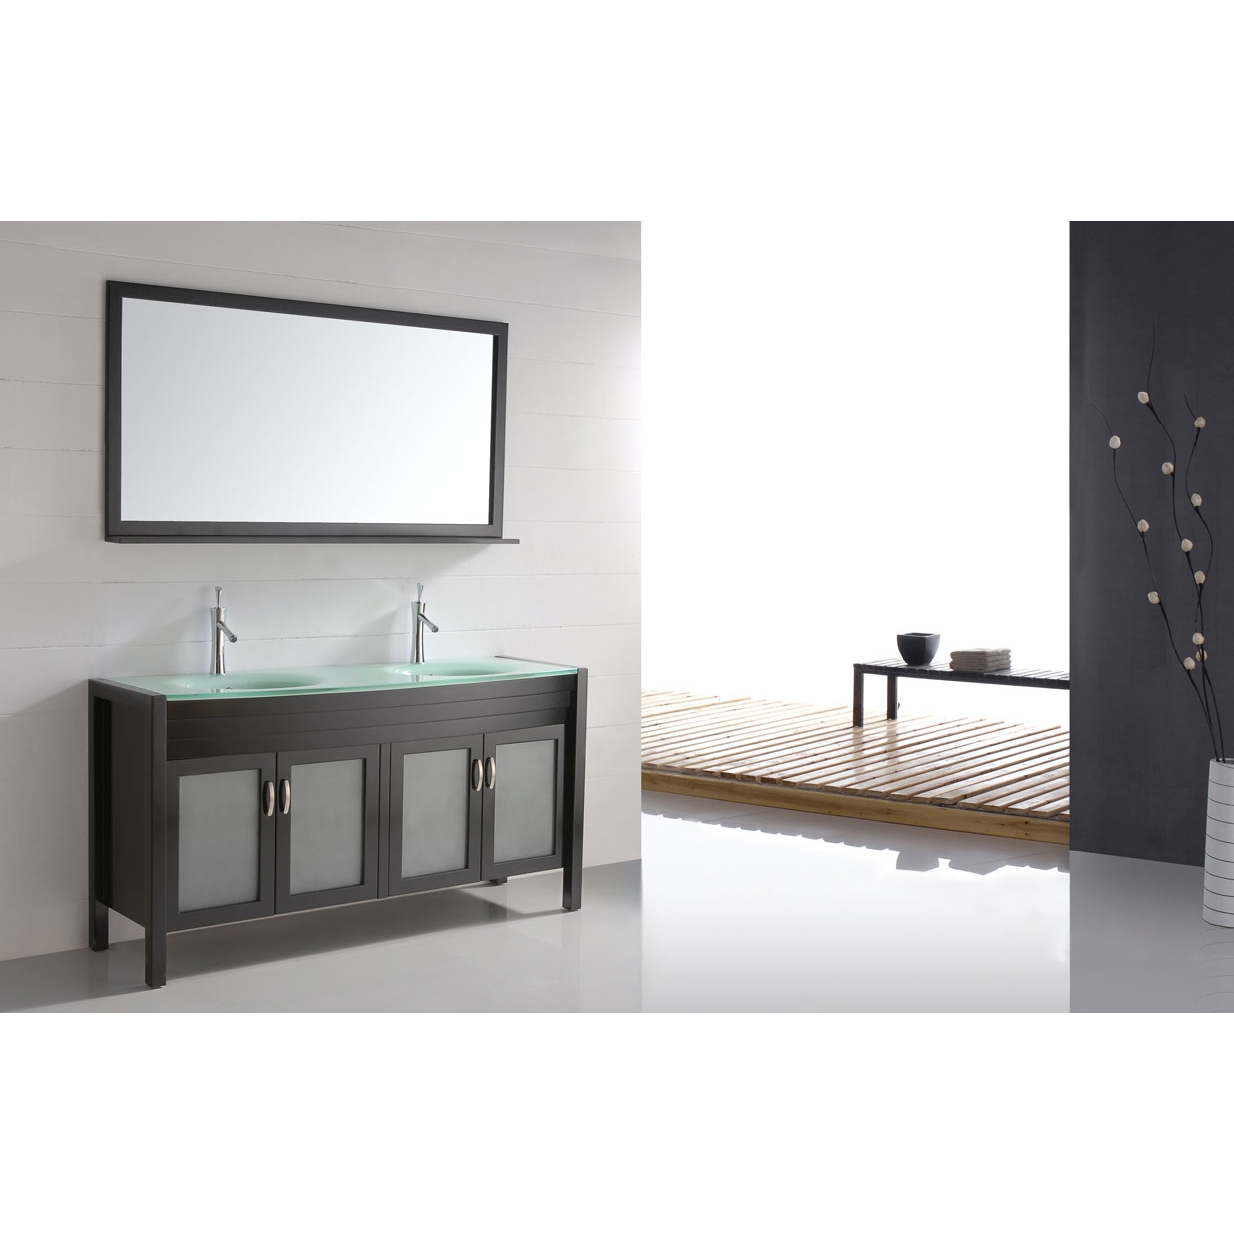 60 Solid Wood Double Sink Bathroom Vanity Glass Top Free Shipping Espresso Cb6011 Conceptbaths Com